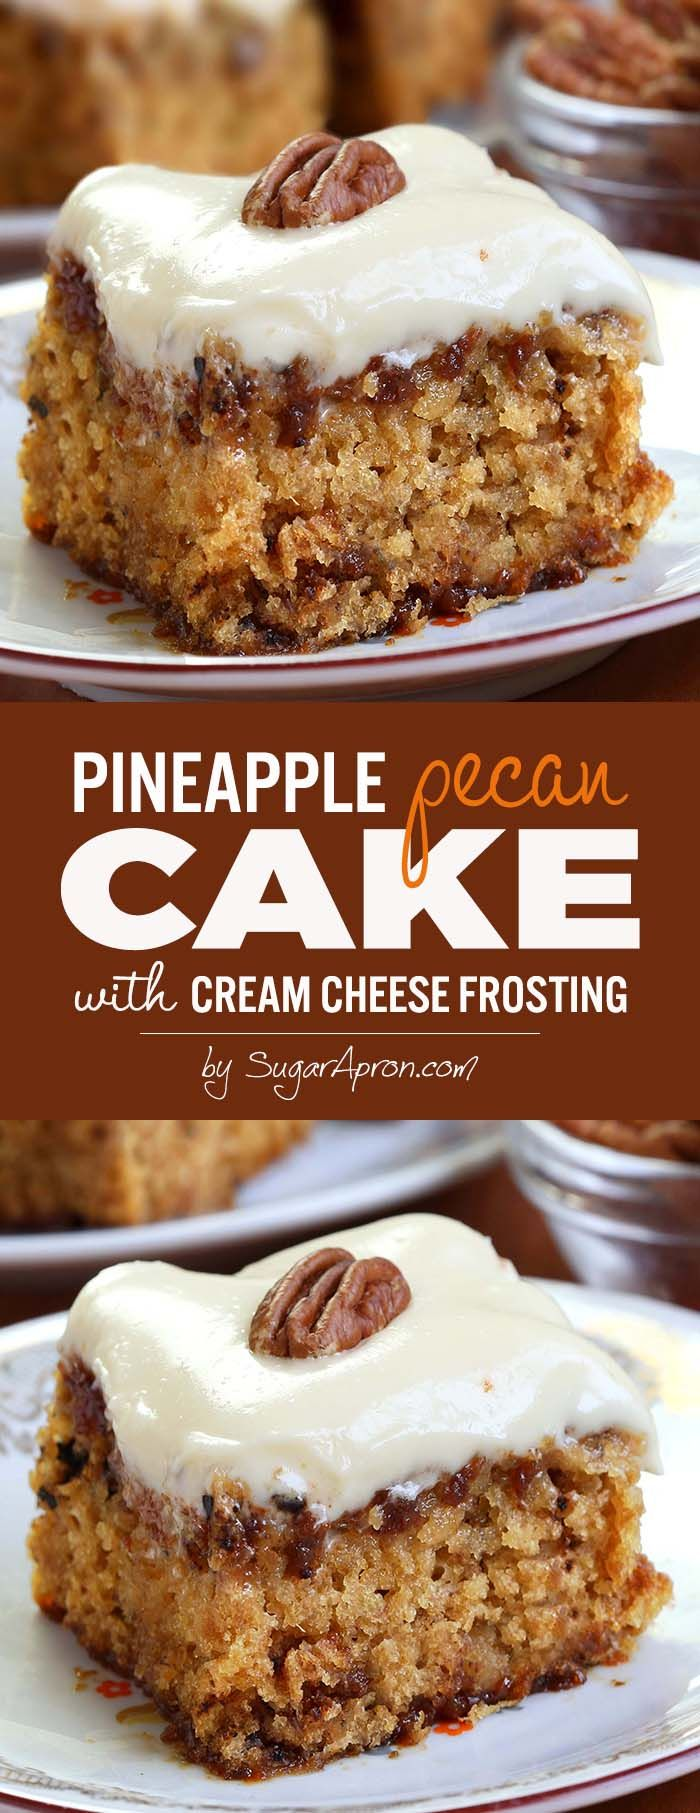 Pineapple Pecan Cake with Cream Cheese Frosting is simple and quick recipe for delicious, homemade cake from scratch, with ingredients that you already have in pantry.